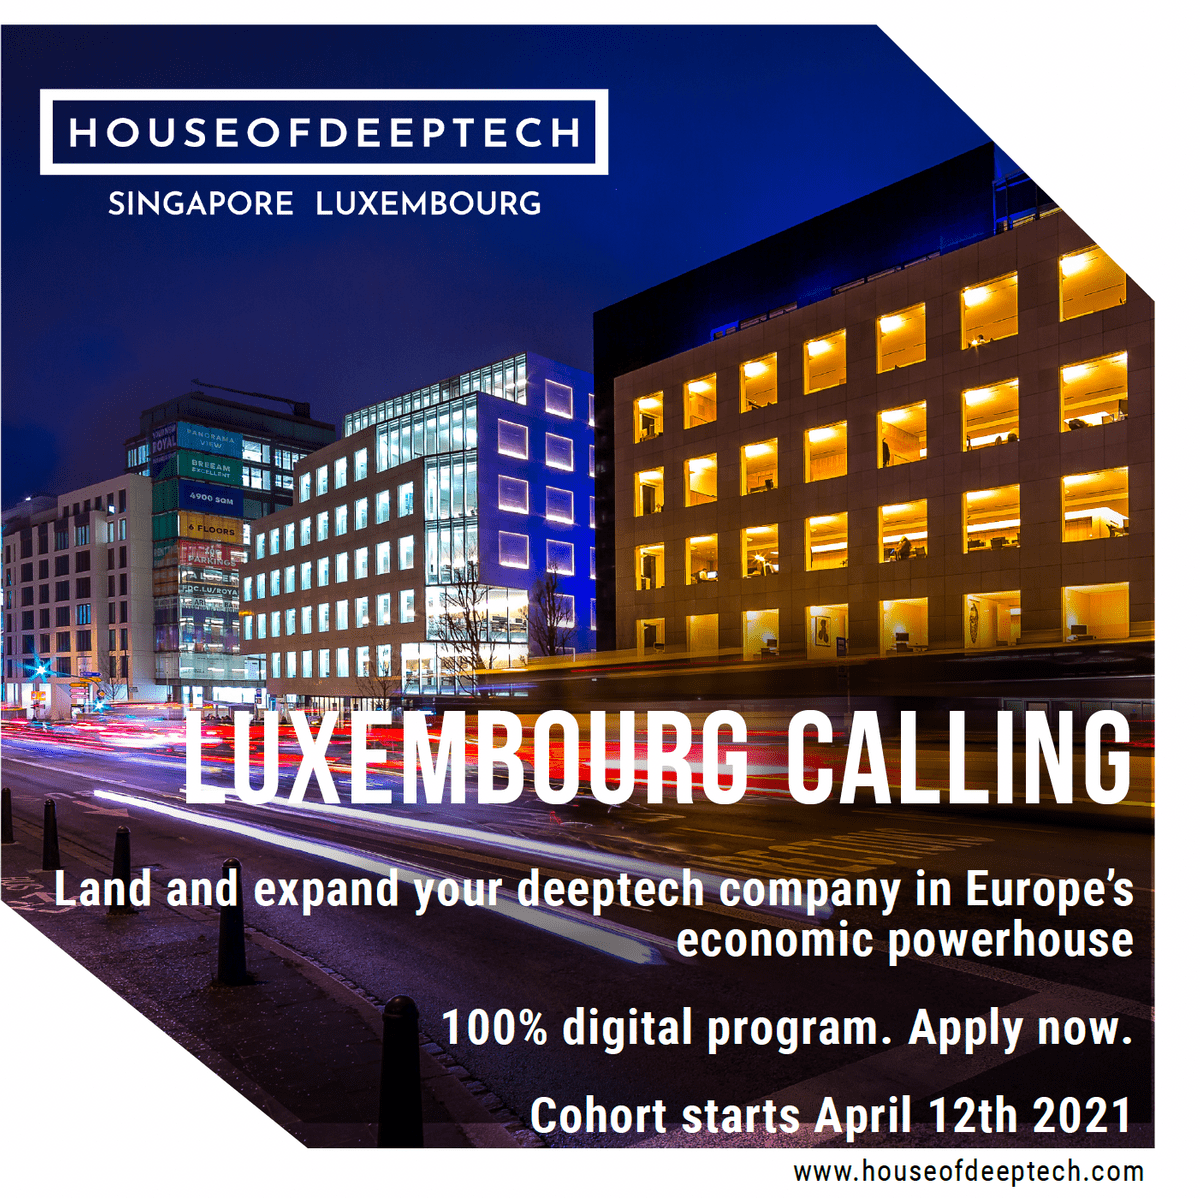 HOUSE OF DEEPTECH - LUXEMBOURG CALLING PROGRAM